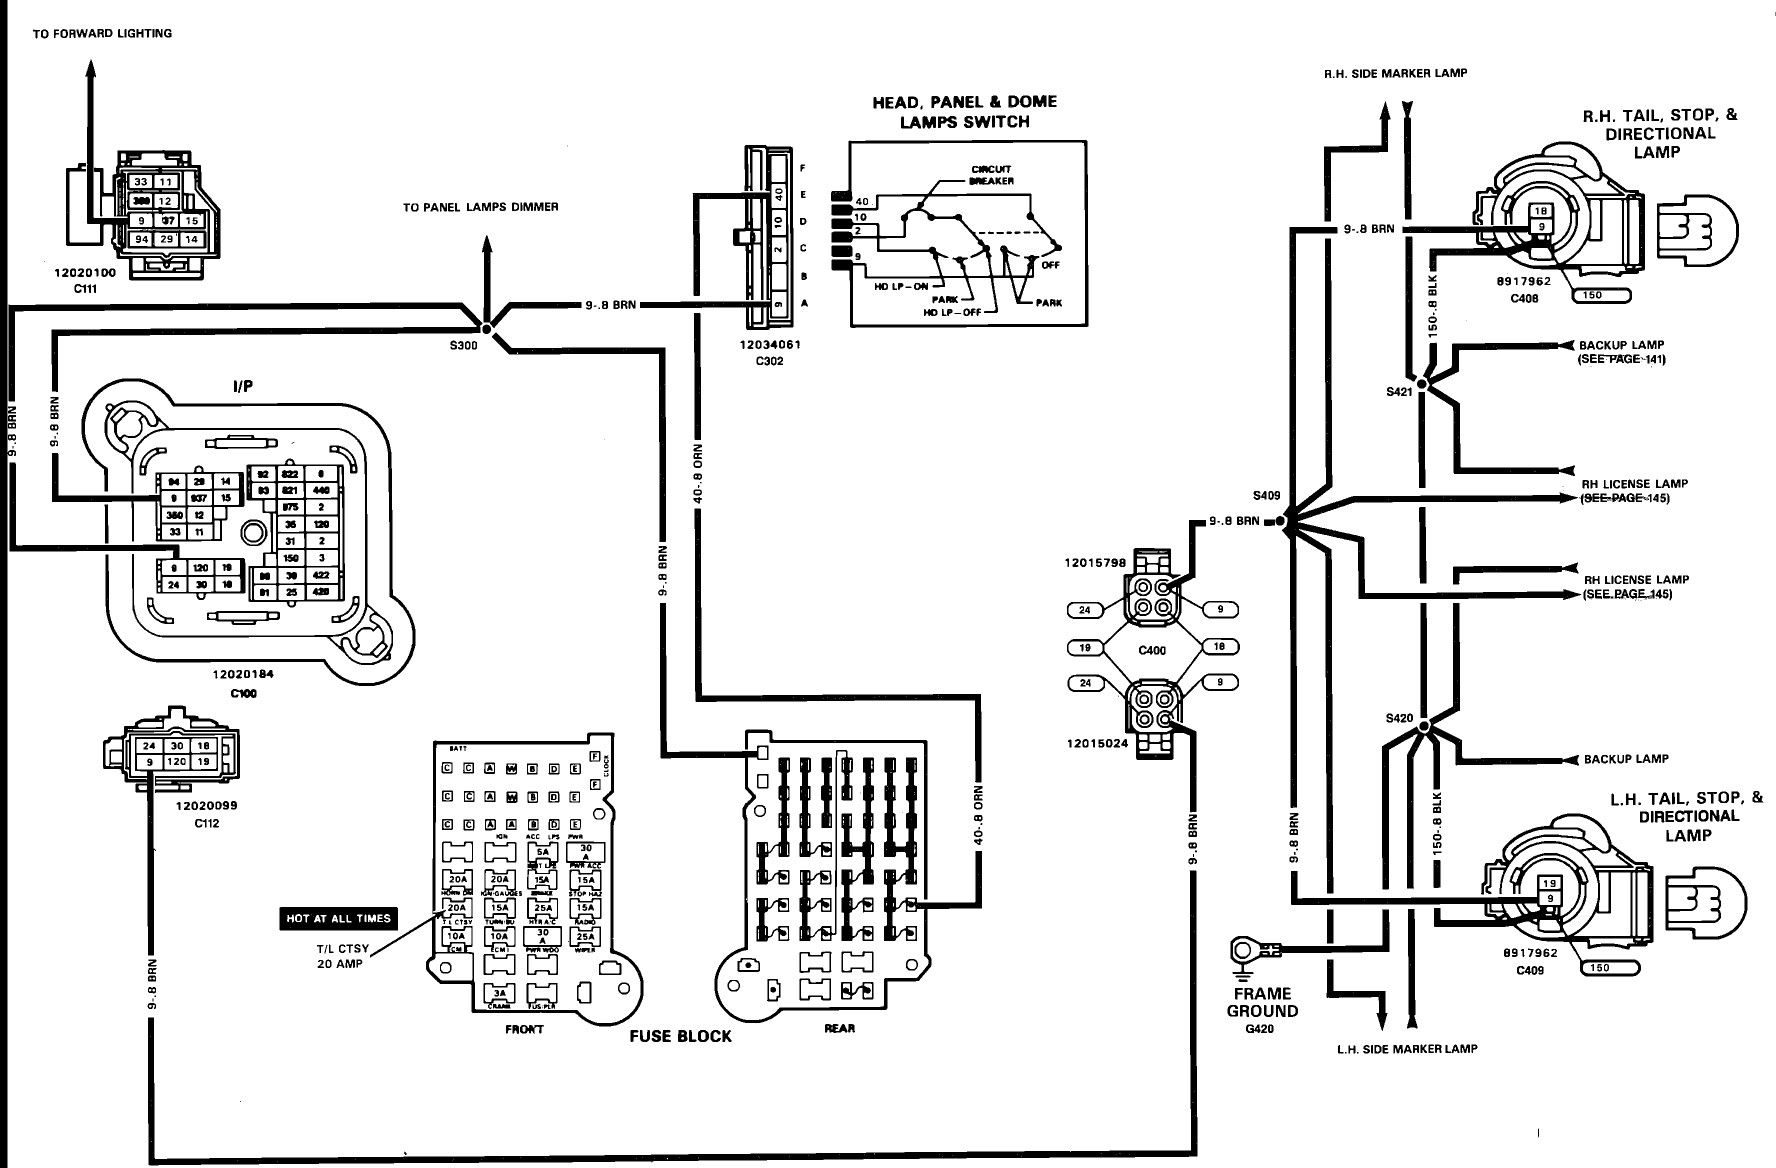 Wiring Diagram For 2001 Chevy S10 4 3 Engine Freightliner Chevy S10 Chevy